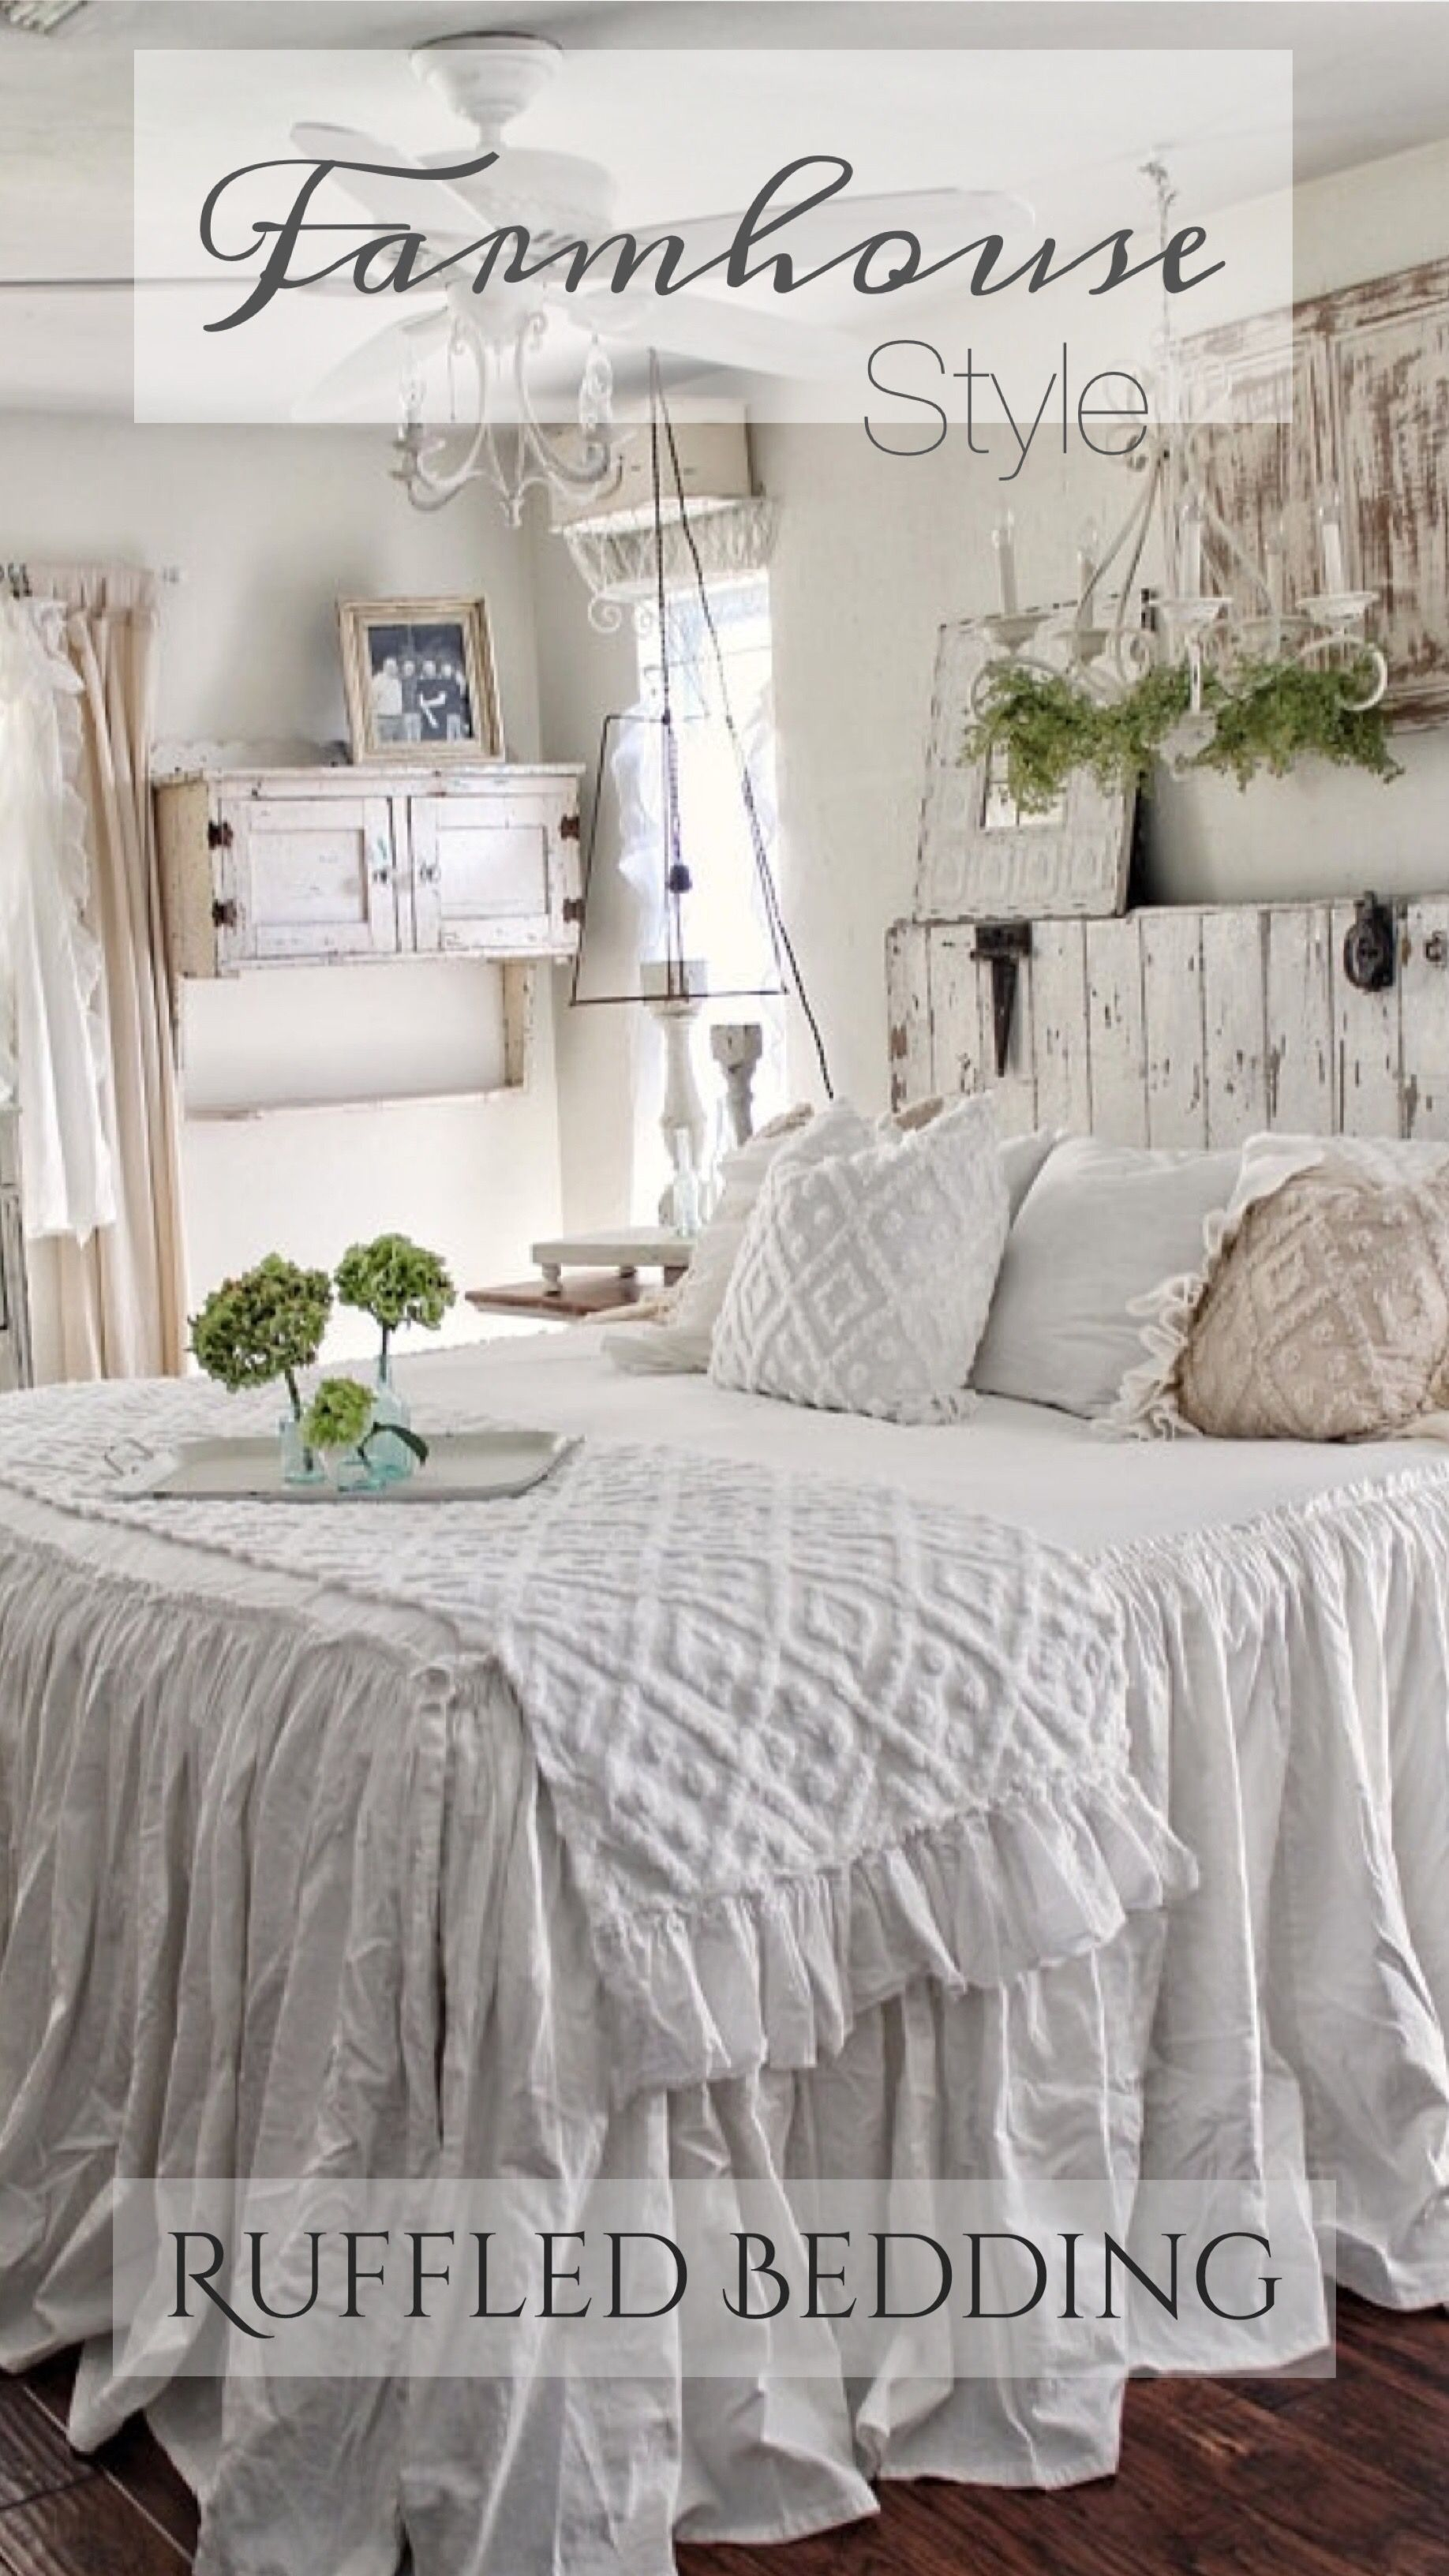 Farmhouse Style Ruffled Bedding Ad This Is Just Simply Gorgeous A Touch Of Rustic And Chic Farmhouse Bedding Shabby Chic Bedding Chic Bedding Chic Bedroom